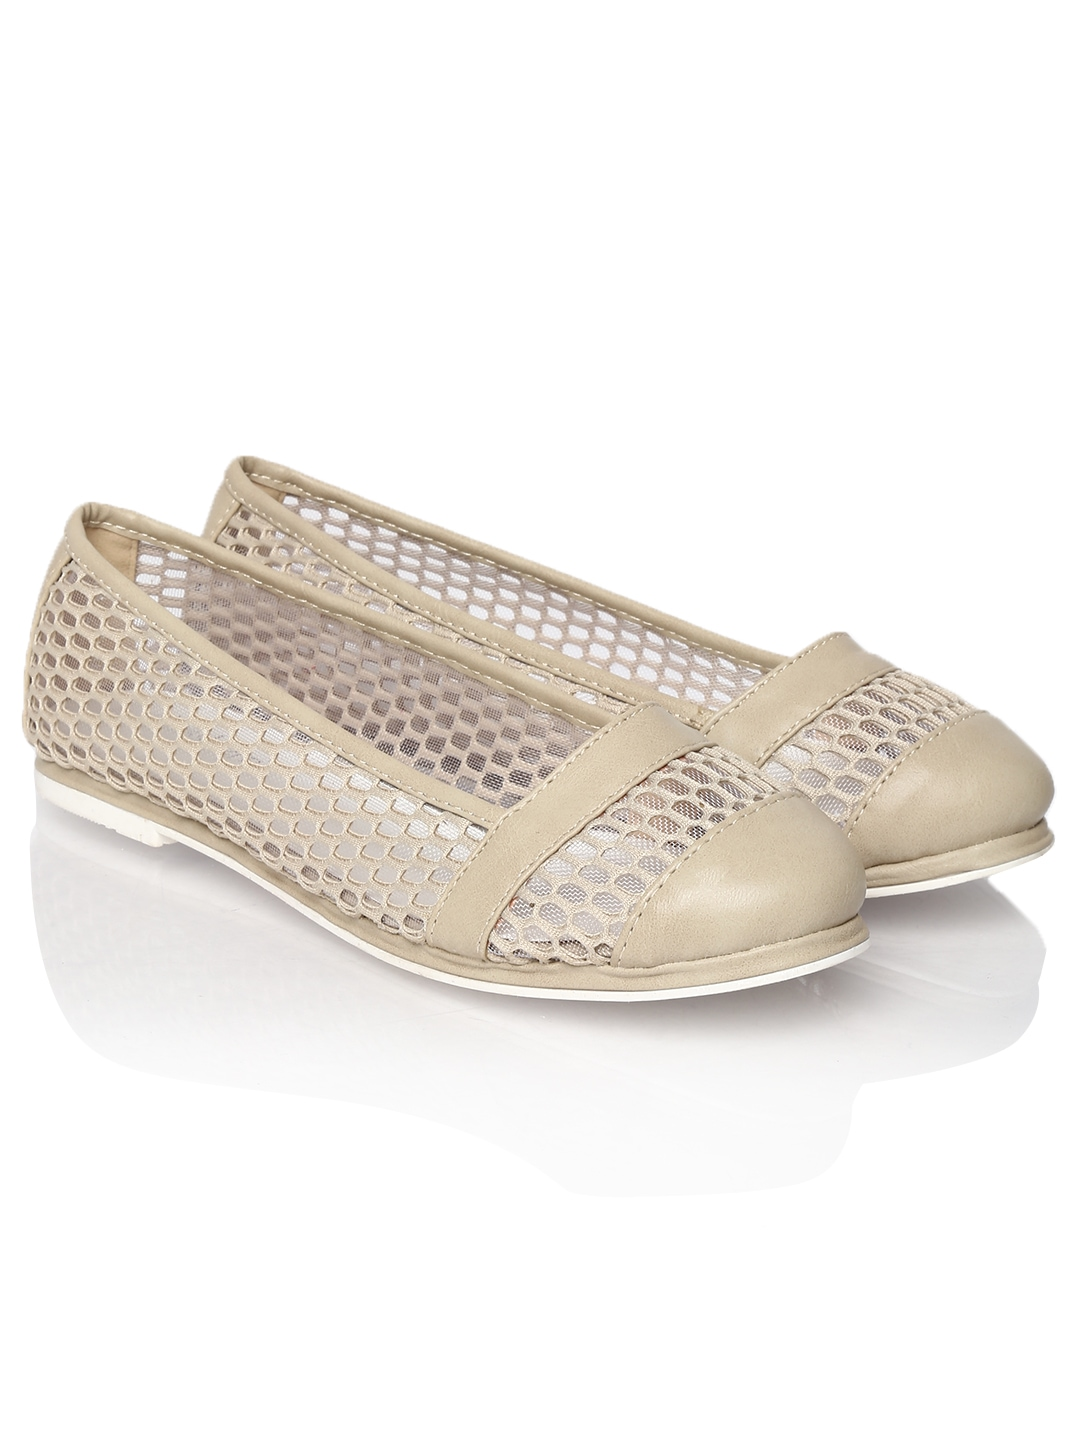 Shop our collection of flats online at Macy's. Browse the latest trends and view our great selection of black flats, white flats, red flats, fashion flats & more.